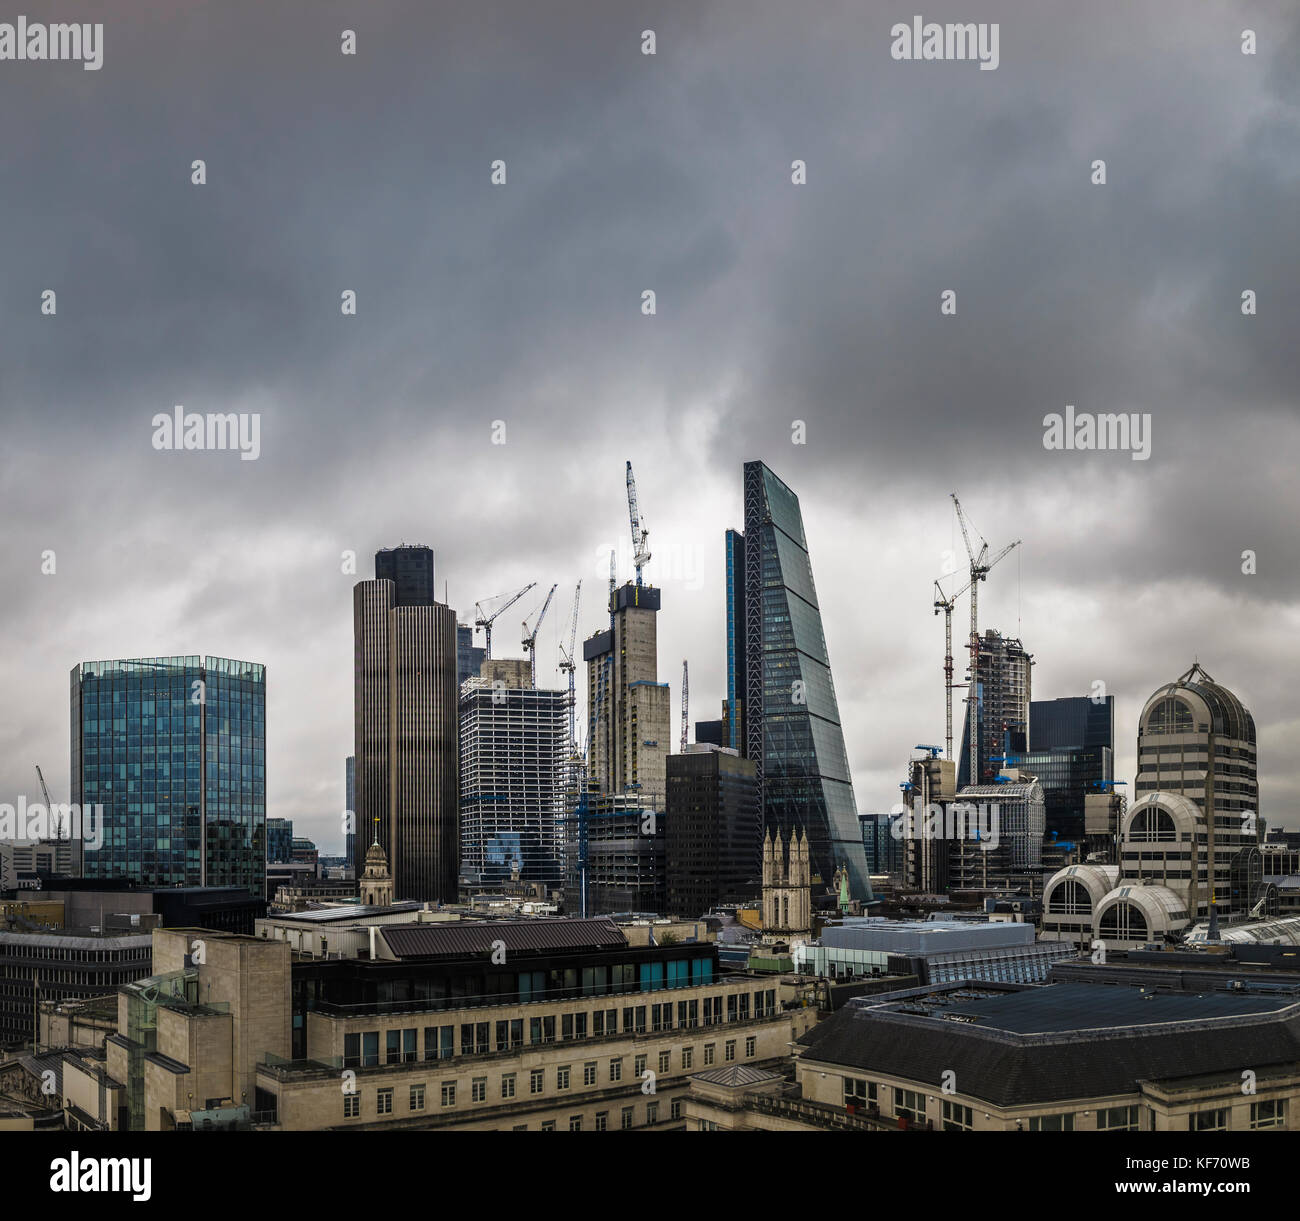 City of London, London, UK, 26th October 2017.  Sombre dark clouds gather over iconic modern buildings on the skyline - Stock Image